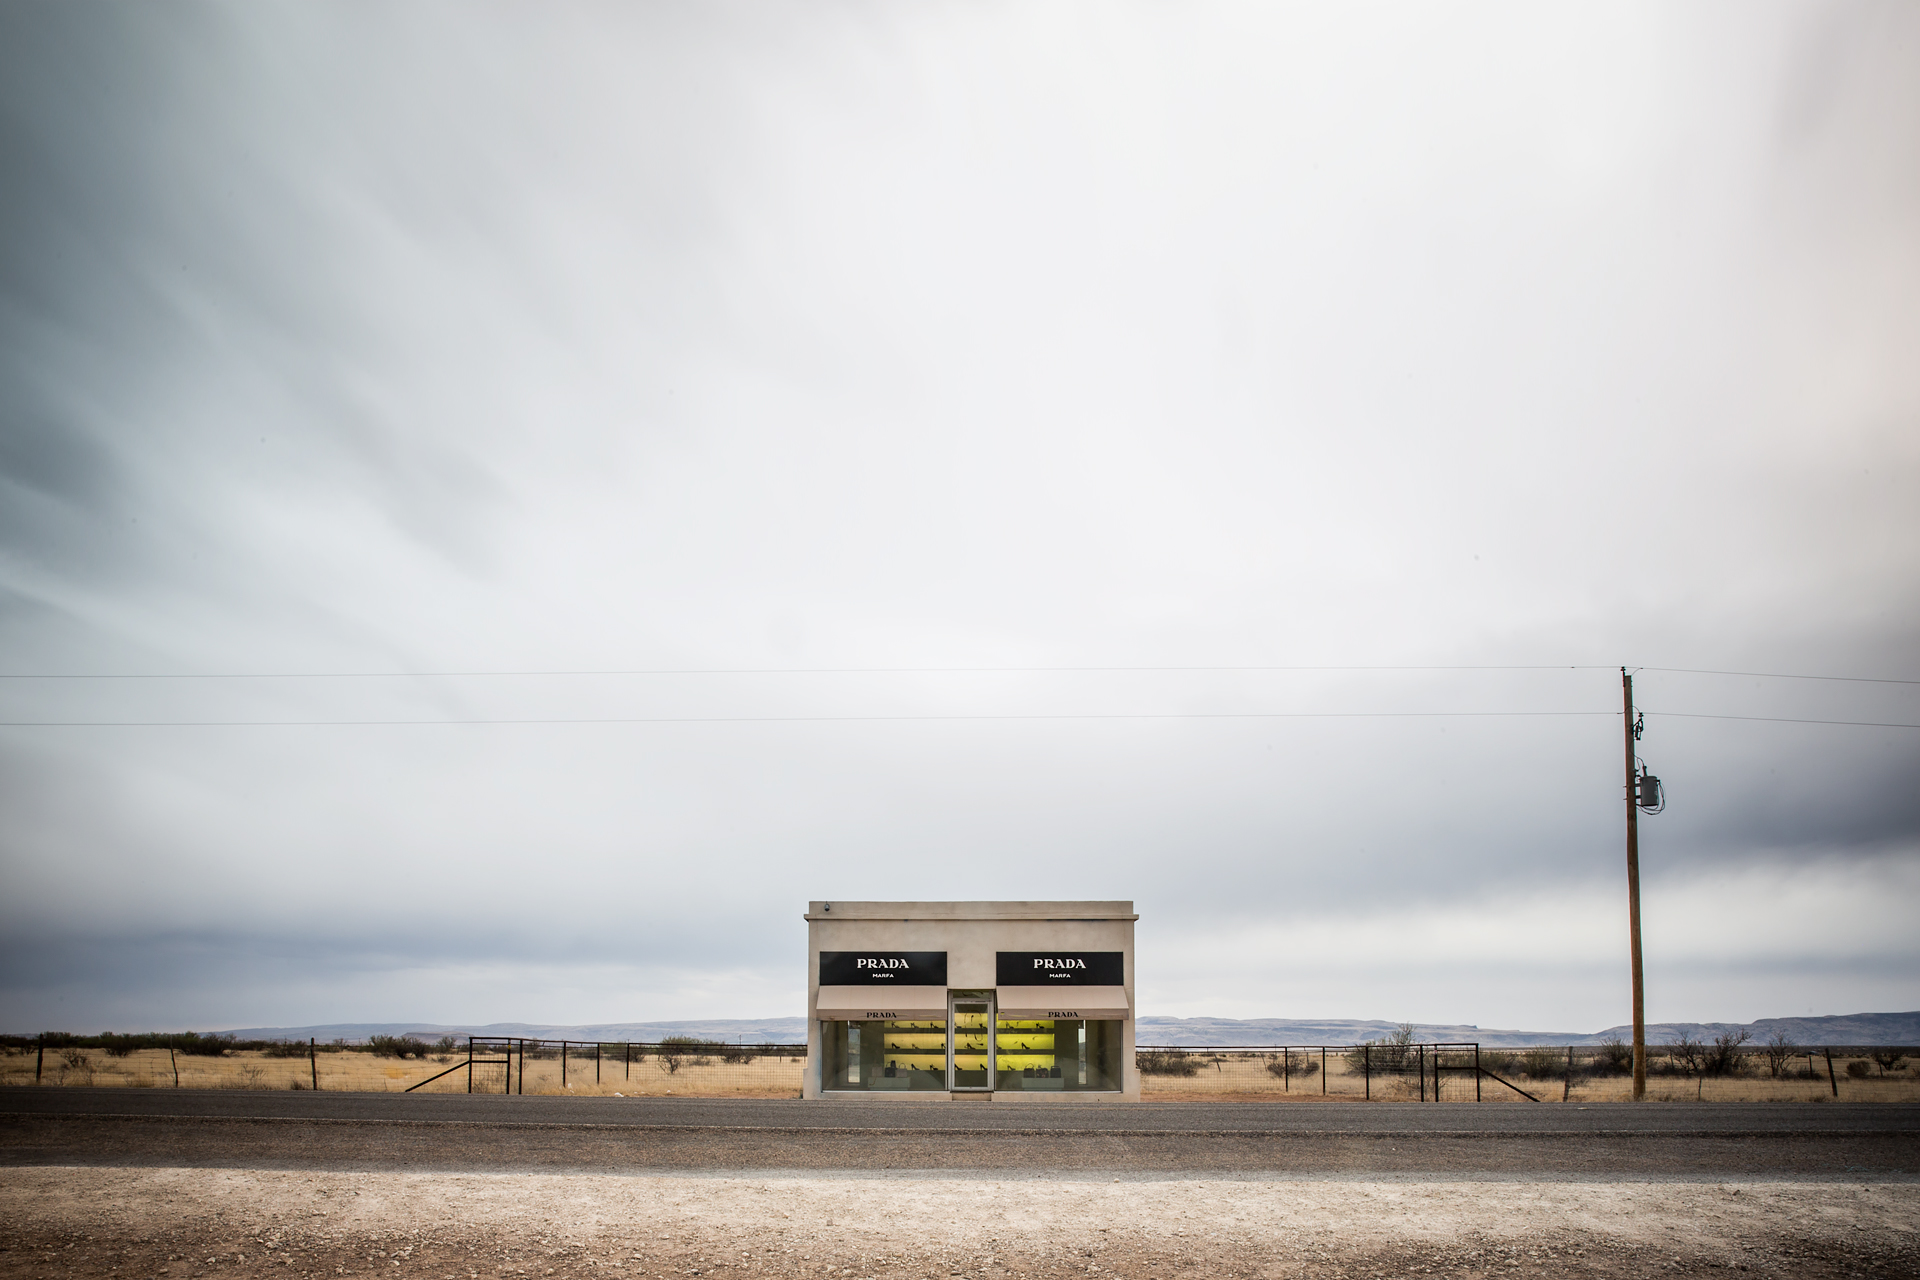 Prada Marfa, Texas USA by Elmgreen and Dragset